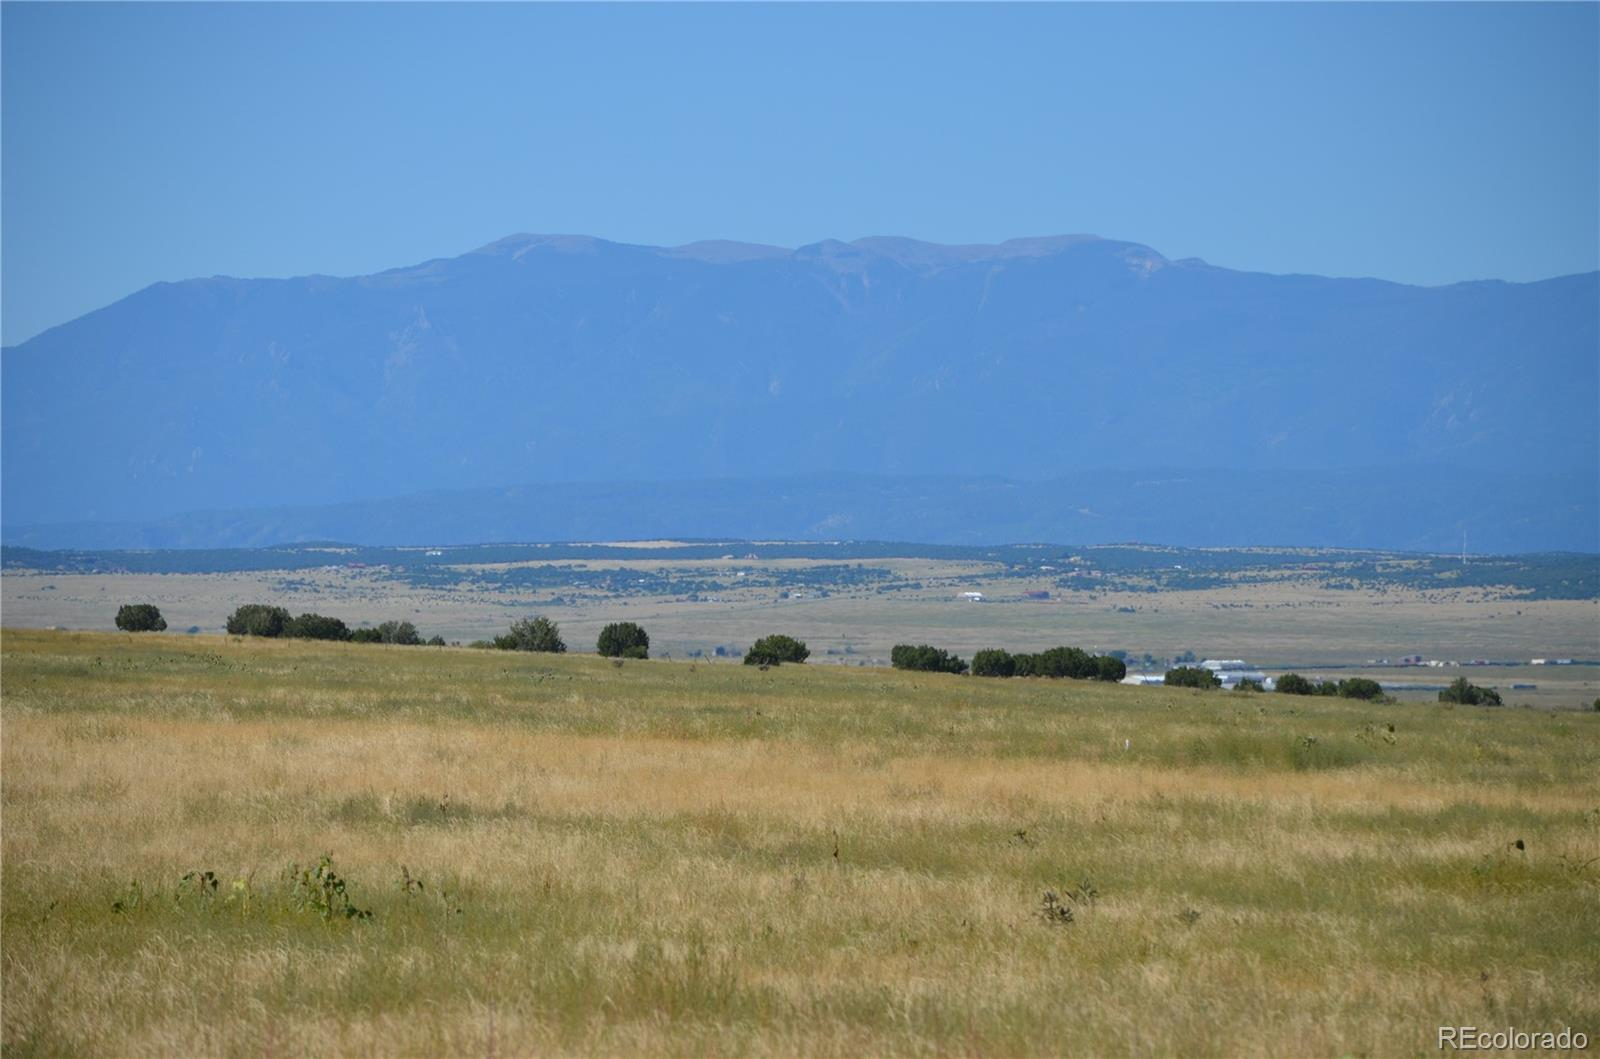 This property has 95 acres annexed within Pueblo city limits.  Rights of ways include Bandera Parkway, Red Creek Springs Road and Lehigh Avenue.  An additional 120 acres is part of the Bandera Corridor Project Area.      The property boasts beautiful city views to the east and mountain views to the west.  On some of the western acres you have views of Pueblo Reservoir.  Red Creek Springs Road borders much of the northern boundary of the property.      Currently all of the acres are taxed at agriculture rates and are currently leased for livestock grazing.  2020 property tax totaled $855.91.  Well permit #18868-A located in SE4NW4 Section 12-21-66 services multiple tanks for watering livestock.        Possession immediate upon closing subject to year-to-year grazing lease with John and Rita Cowen.  All seller's mineral interest, if any, shall transfer to Buyer.  This property includes a total of 24 Pueblo County parcels.      0332 The Land Office LLC and its brokers are working with the Seller as Seller's Agent and Buyer as a Customer. Information contained herein, while not guaranteed, is from sources we believe reliable.  The value from this investment is for the reader, his or her tax advisor, legal counsel, and/or other advisors to evaluate and is not to be based solely on the information provided herein.  The prospect should carefully verify each item of information contained herein.  Price, terms, and information subject to change.